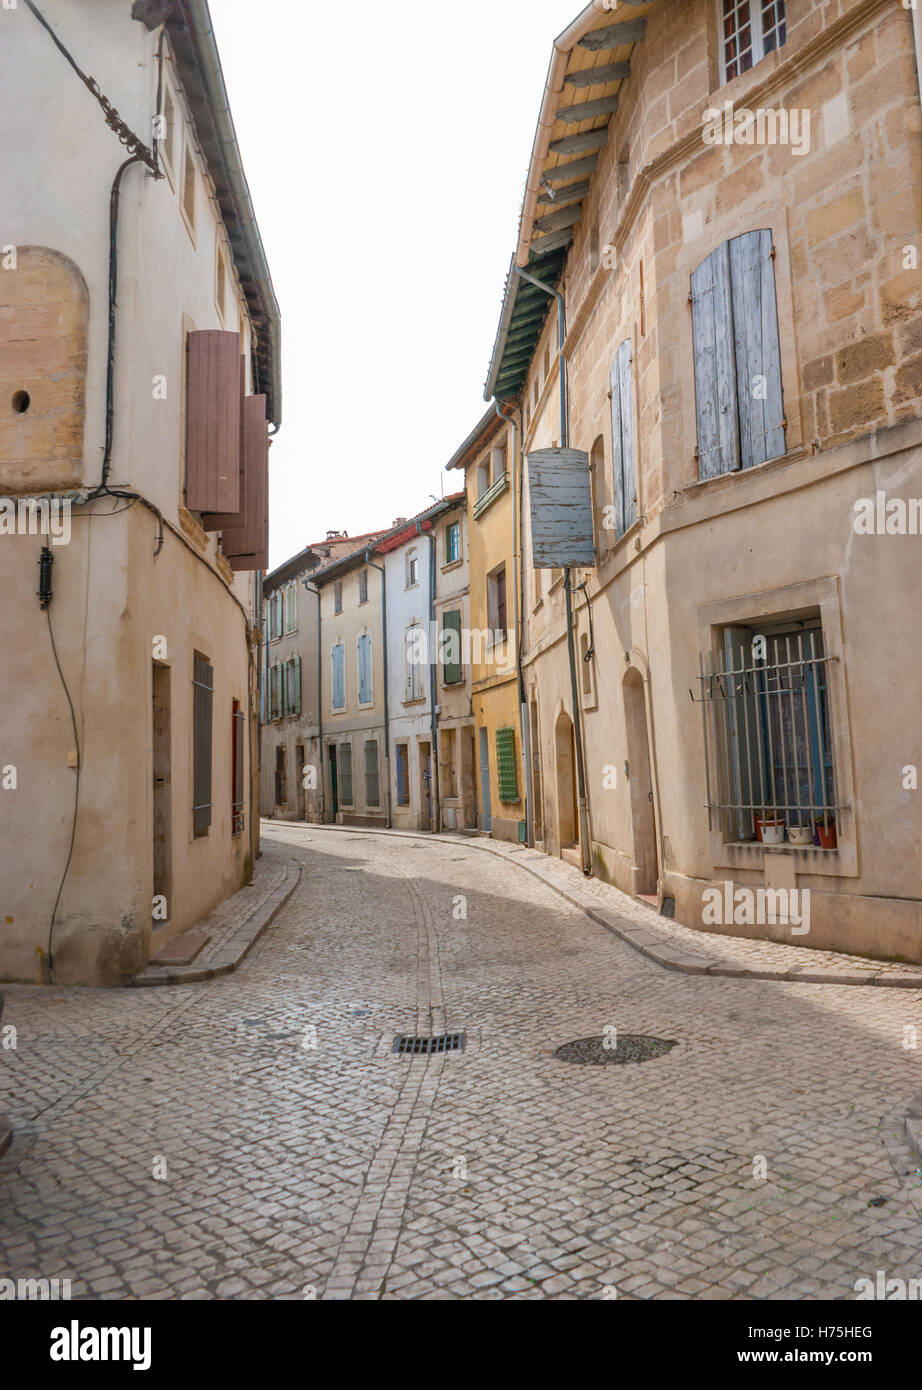 The small medieval towns of southern France are almost empty in the Sunday morning. - Stock Image